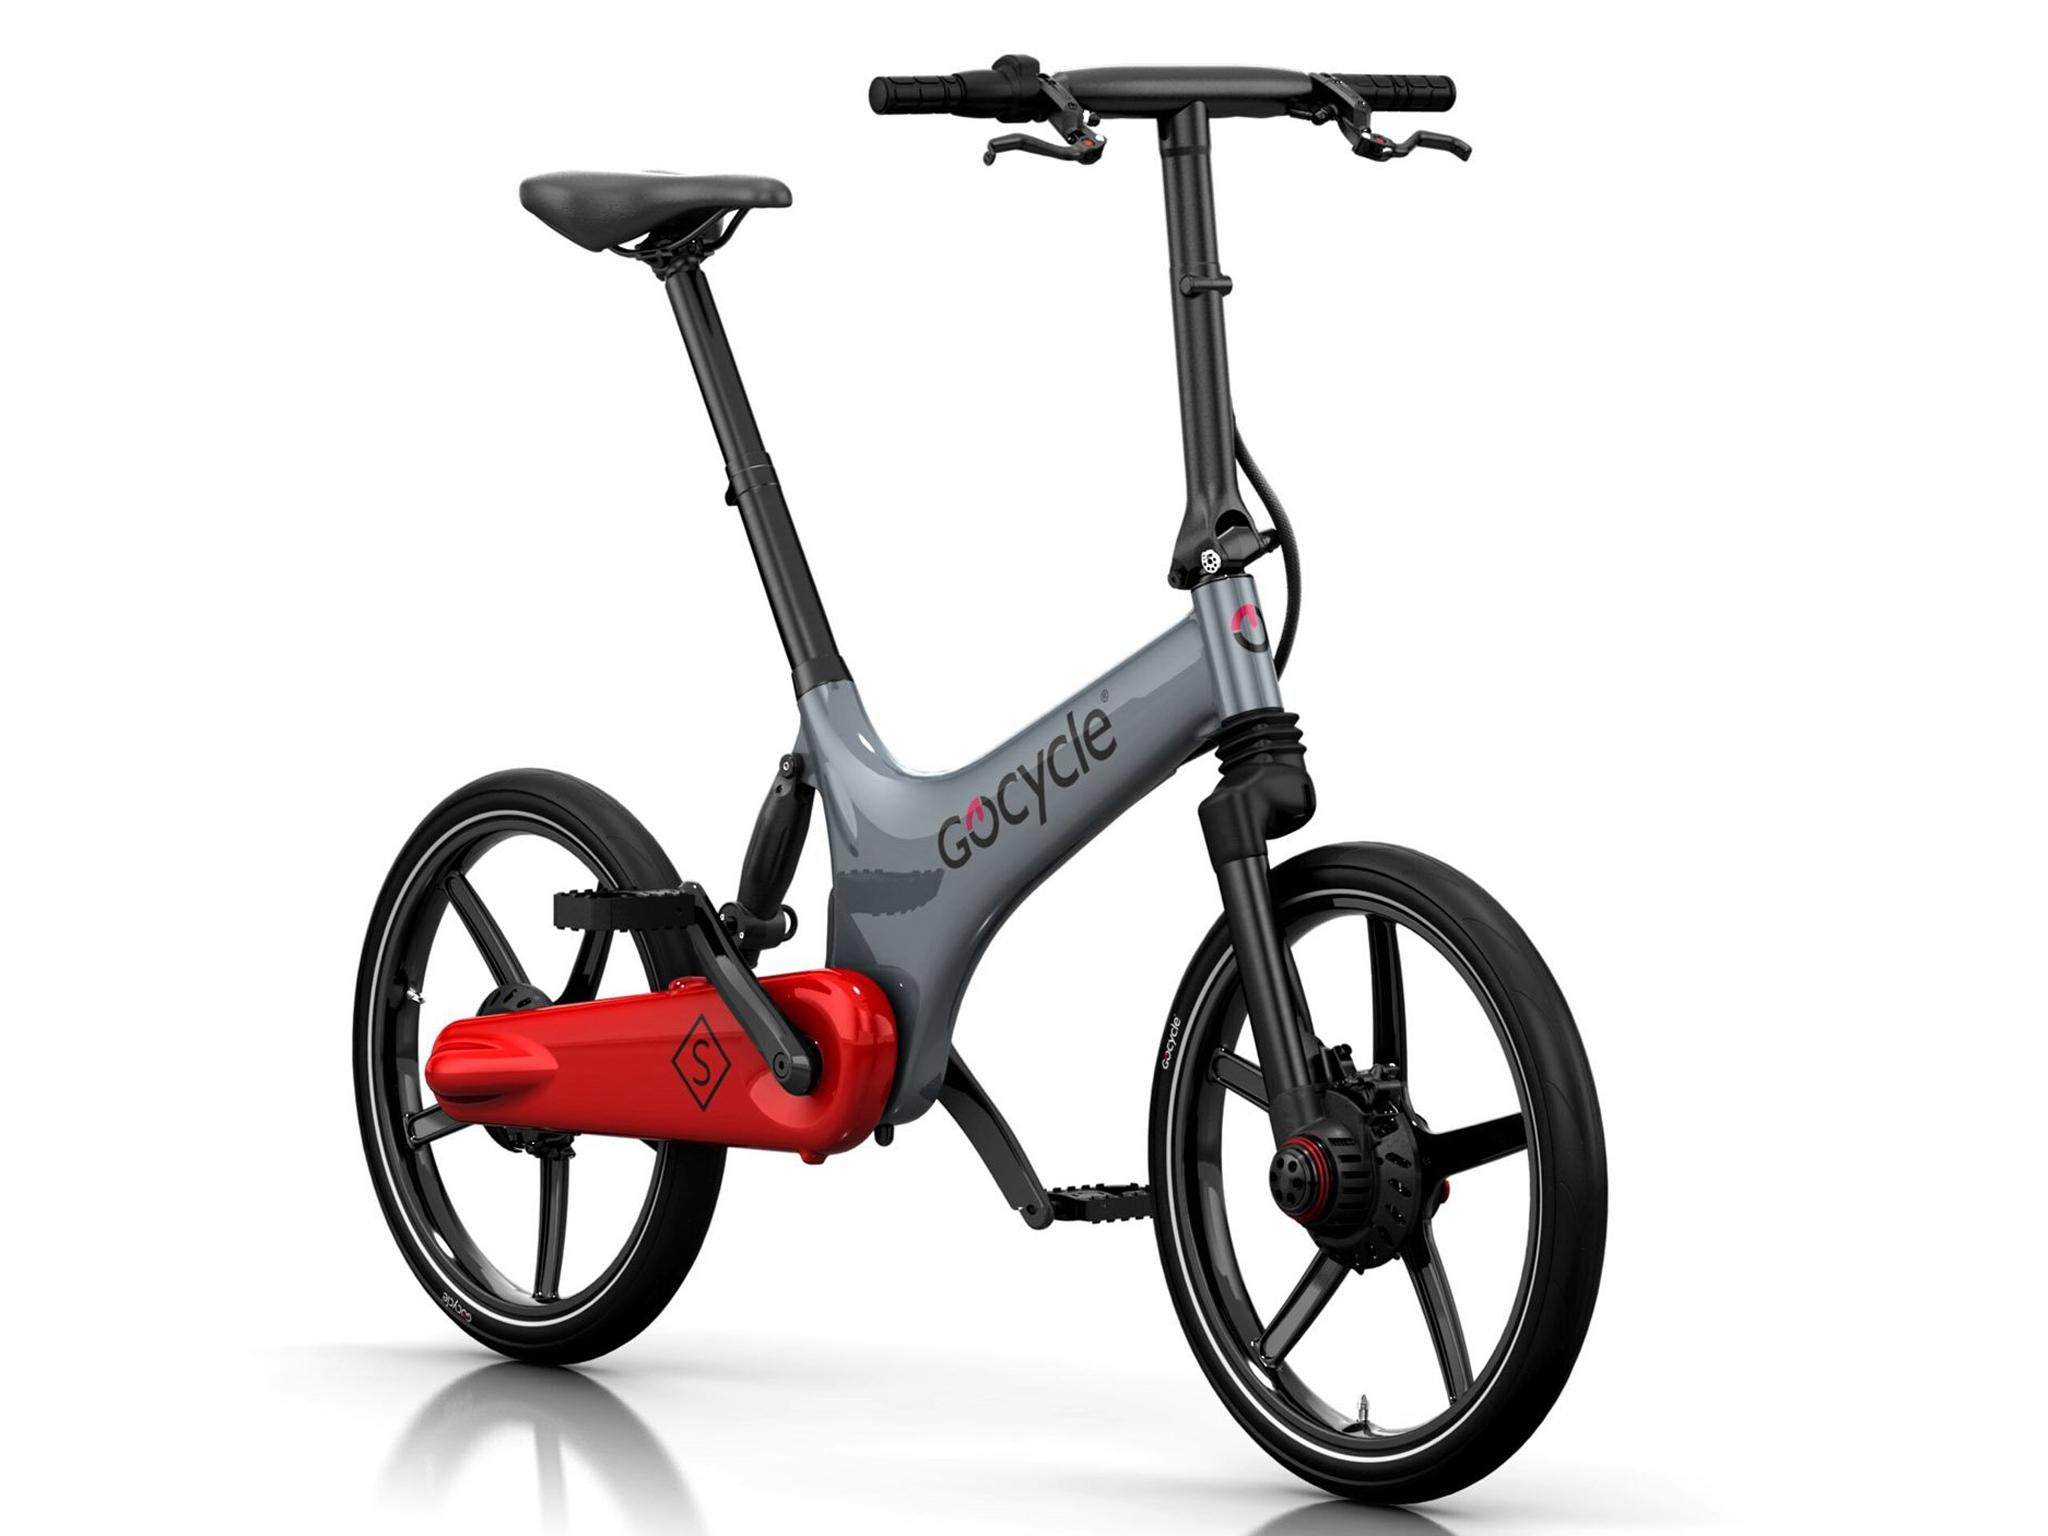 10 Best Electric Bikes The Independent Motorcycle Battery Wiring Diagram Stunningly Designed Gocycle Is An Advanced Bike